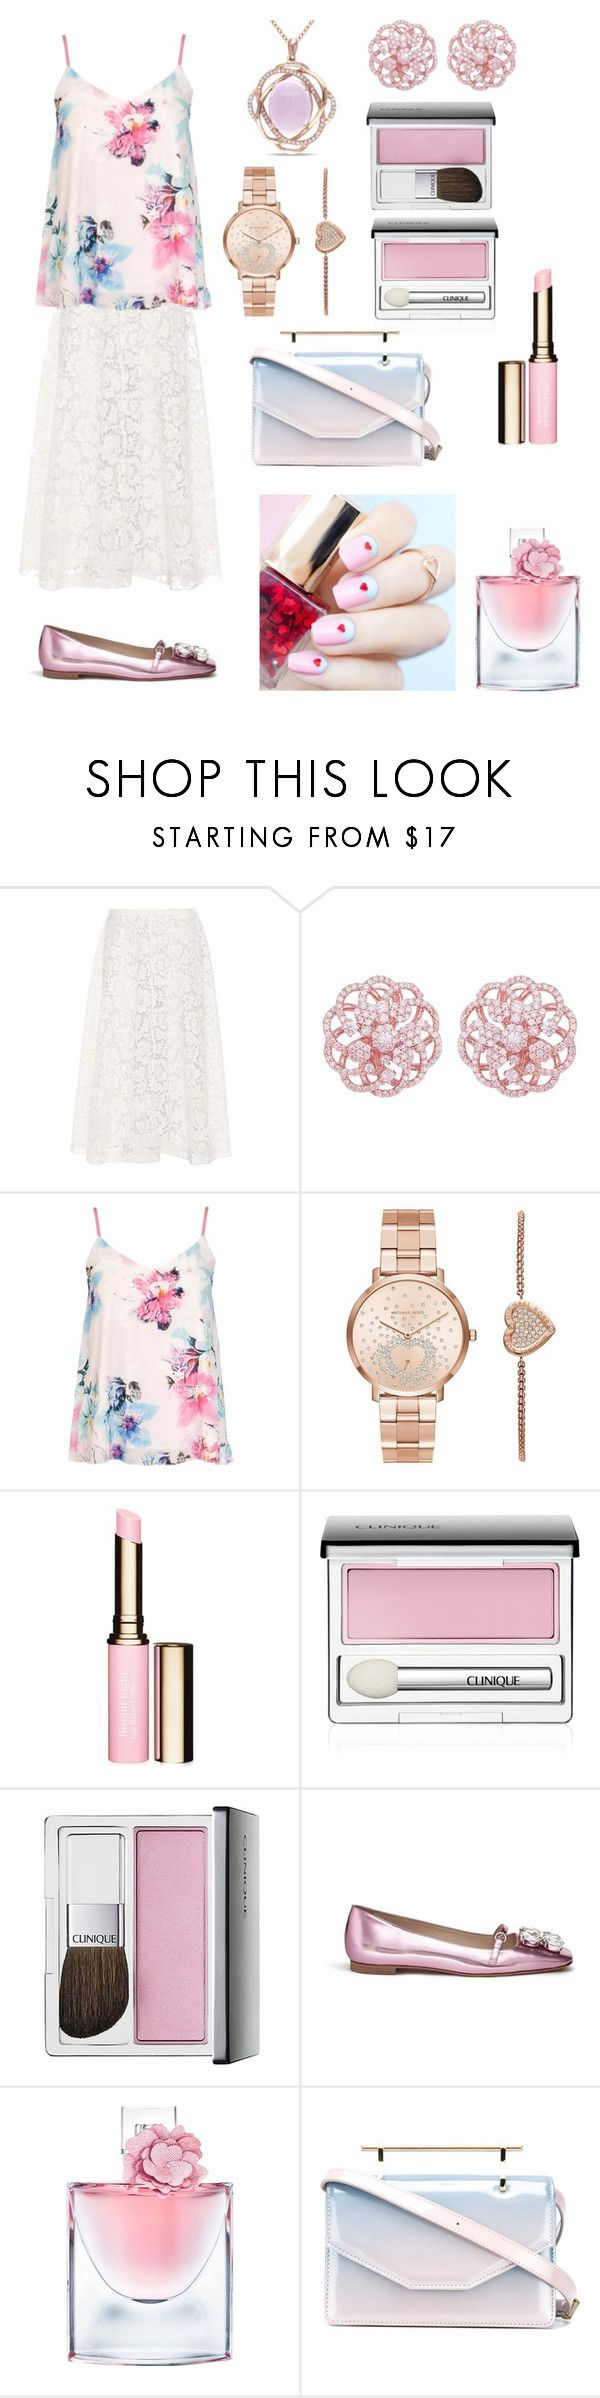 """""""Light colored fashion"""" by ashleyhuang68 ❤ liked on Polyvore featuring Valentino, Emilio!, Dorothy Perkins, Michael Kors, Clarins, Clinique, ncLA, Frances Valentine, Lancôme and M2Malletier"""